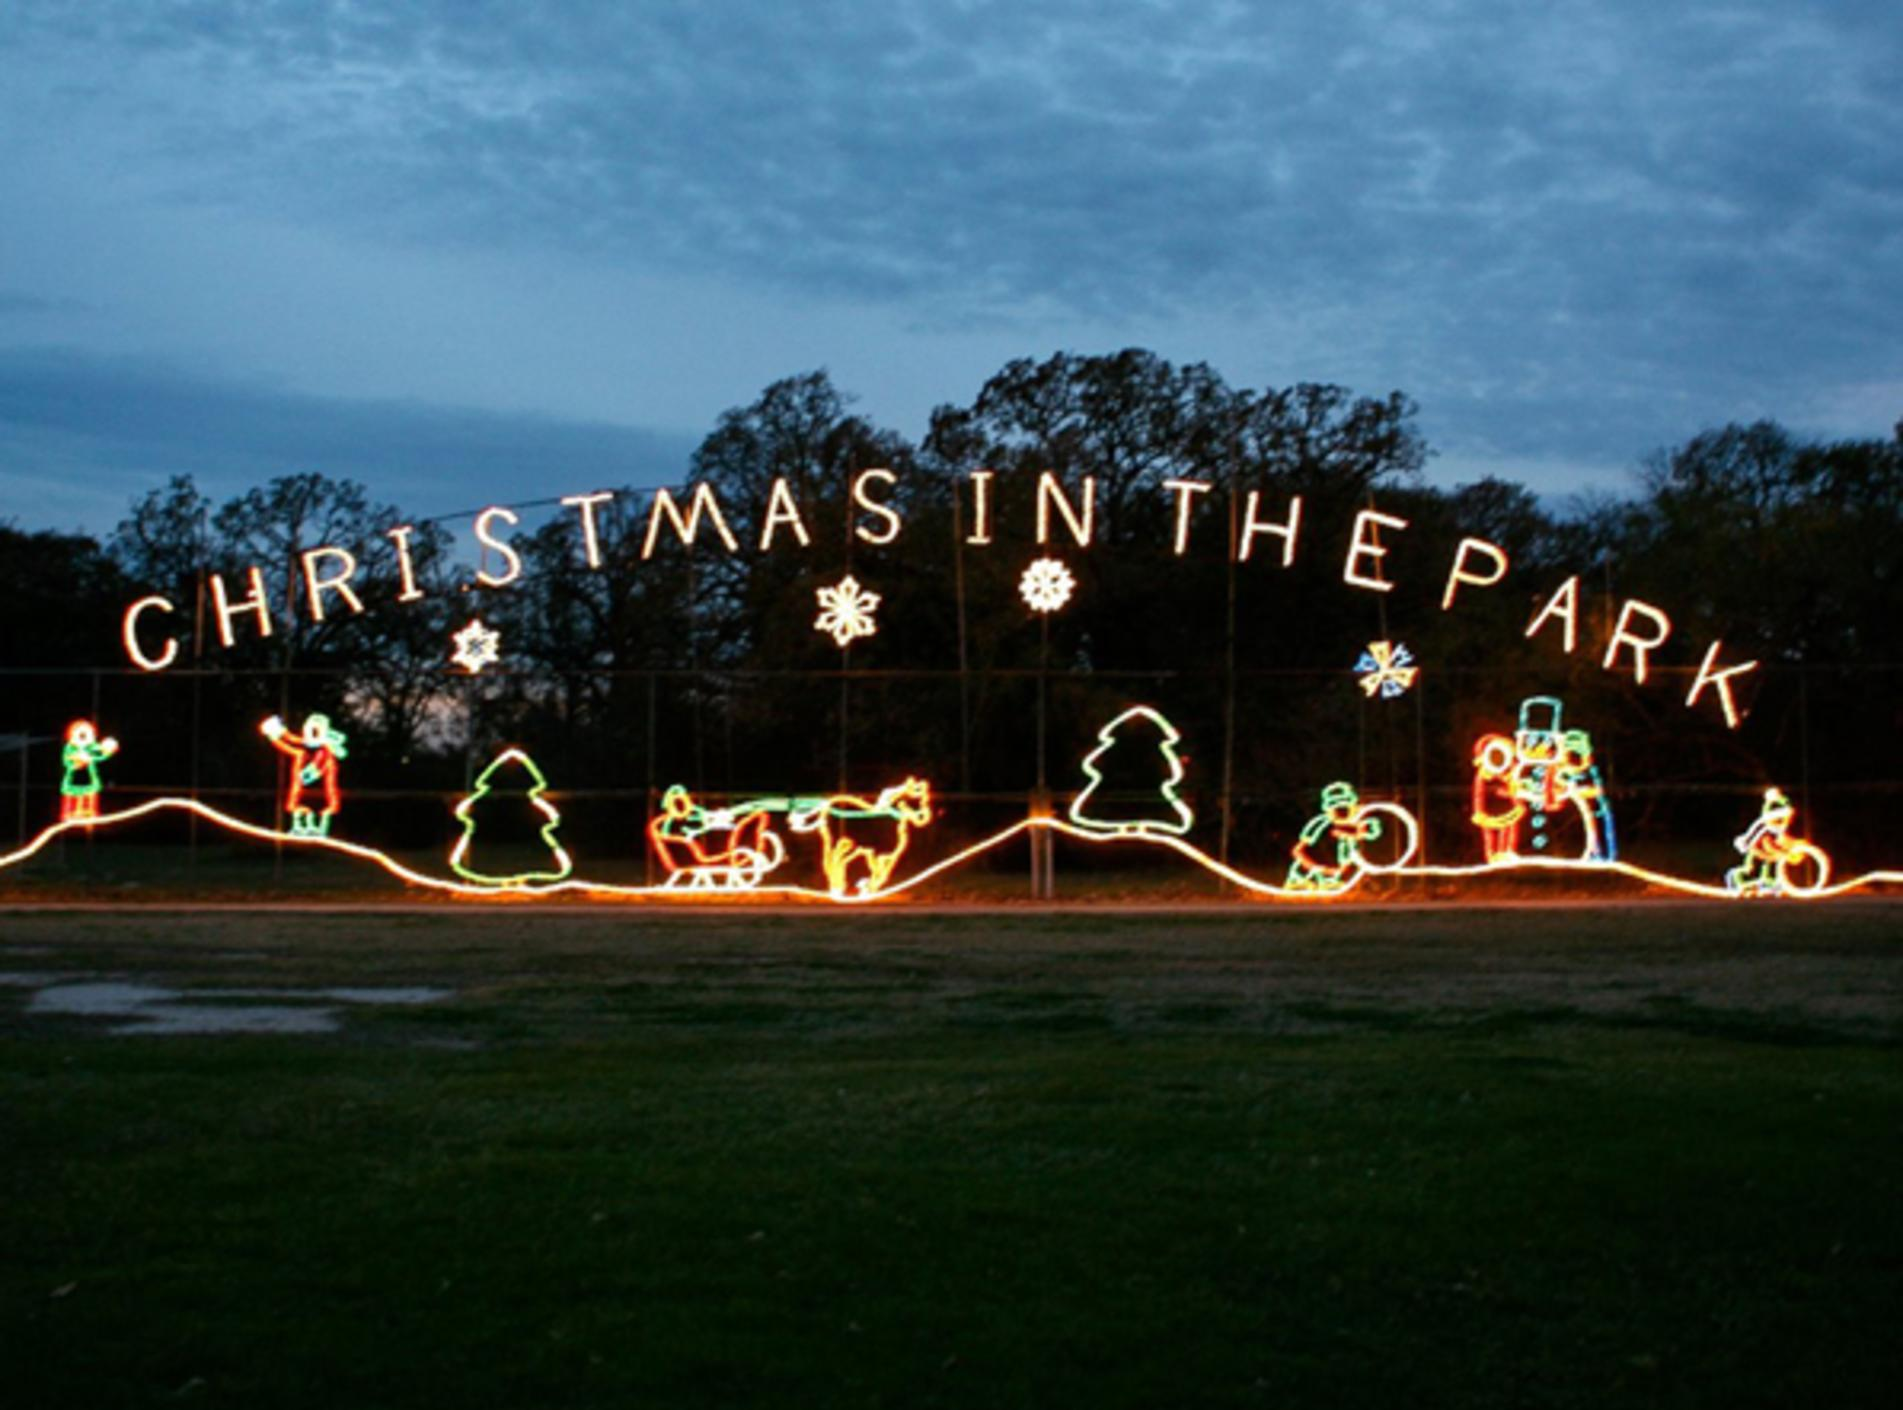 Christmas in the Park at Stephen C. Beachy Central Park